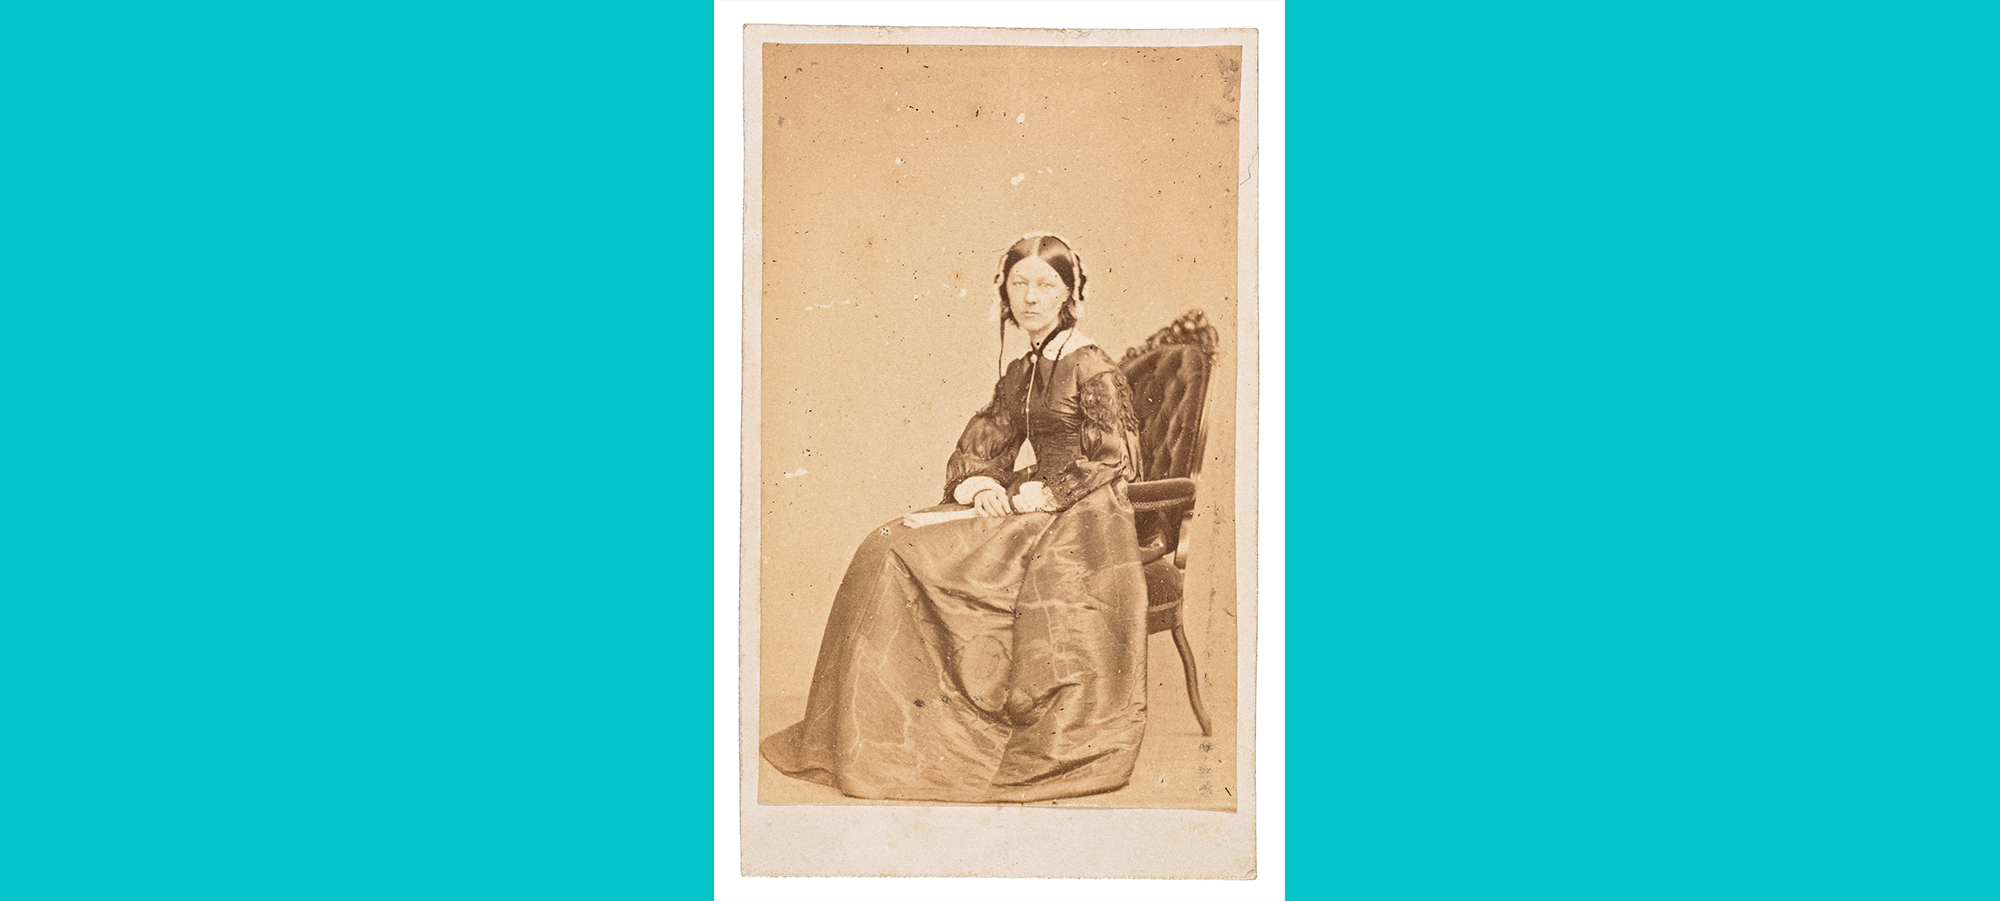 Florence Nightingale photographed seated with head turned at 90 degree angle